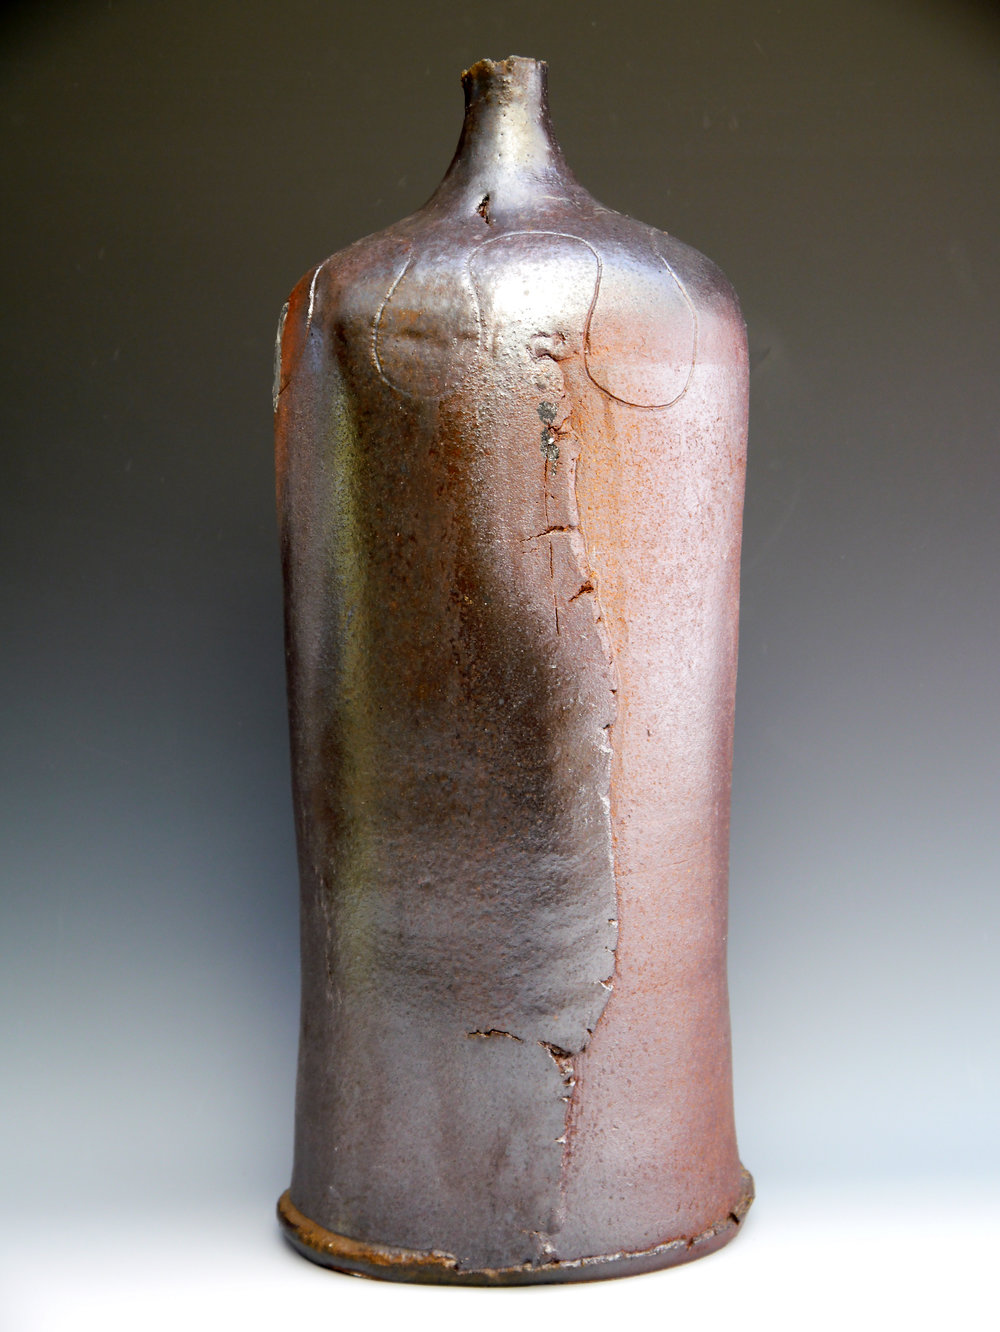 05 August 2014 4 day woodfired shino glazed large bottle 52 x 22 cm.jpg